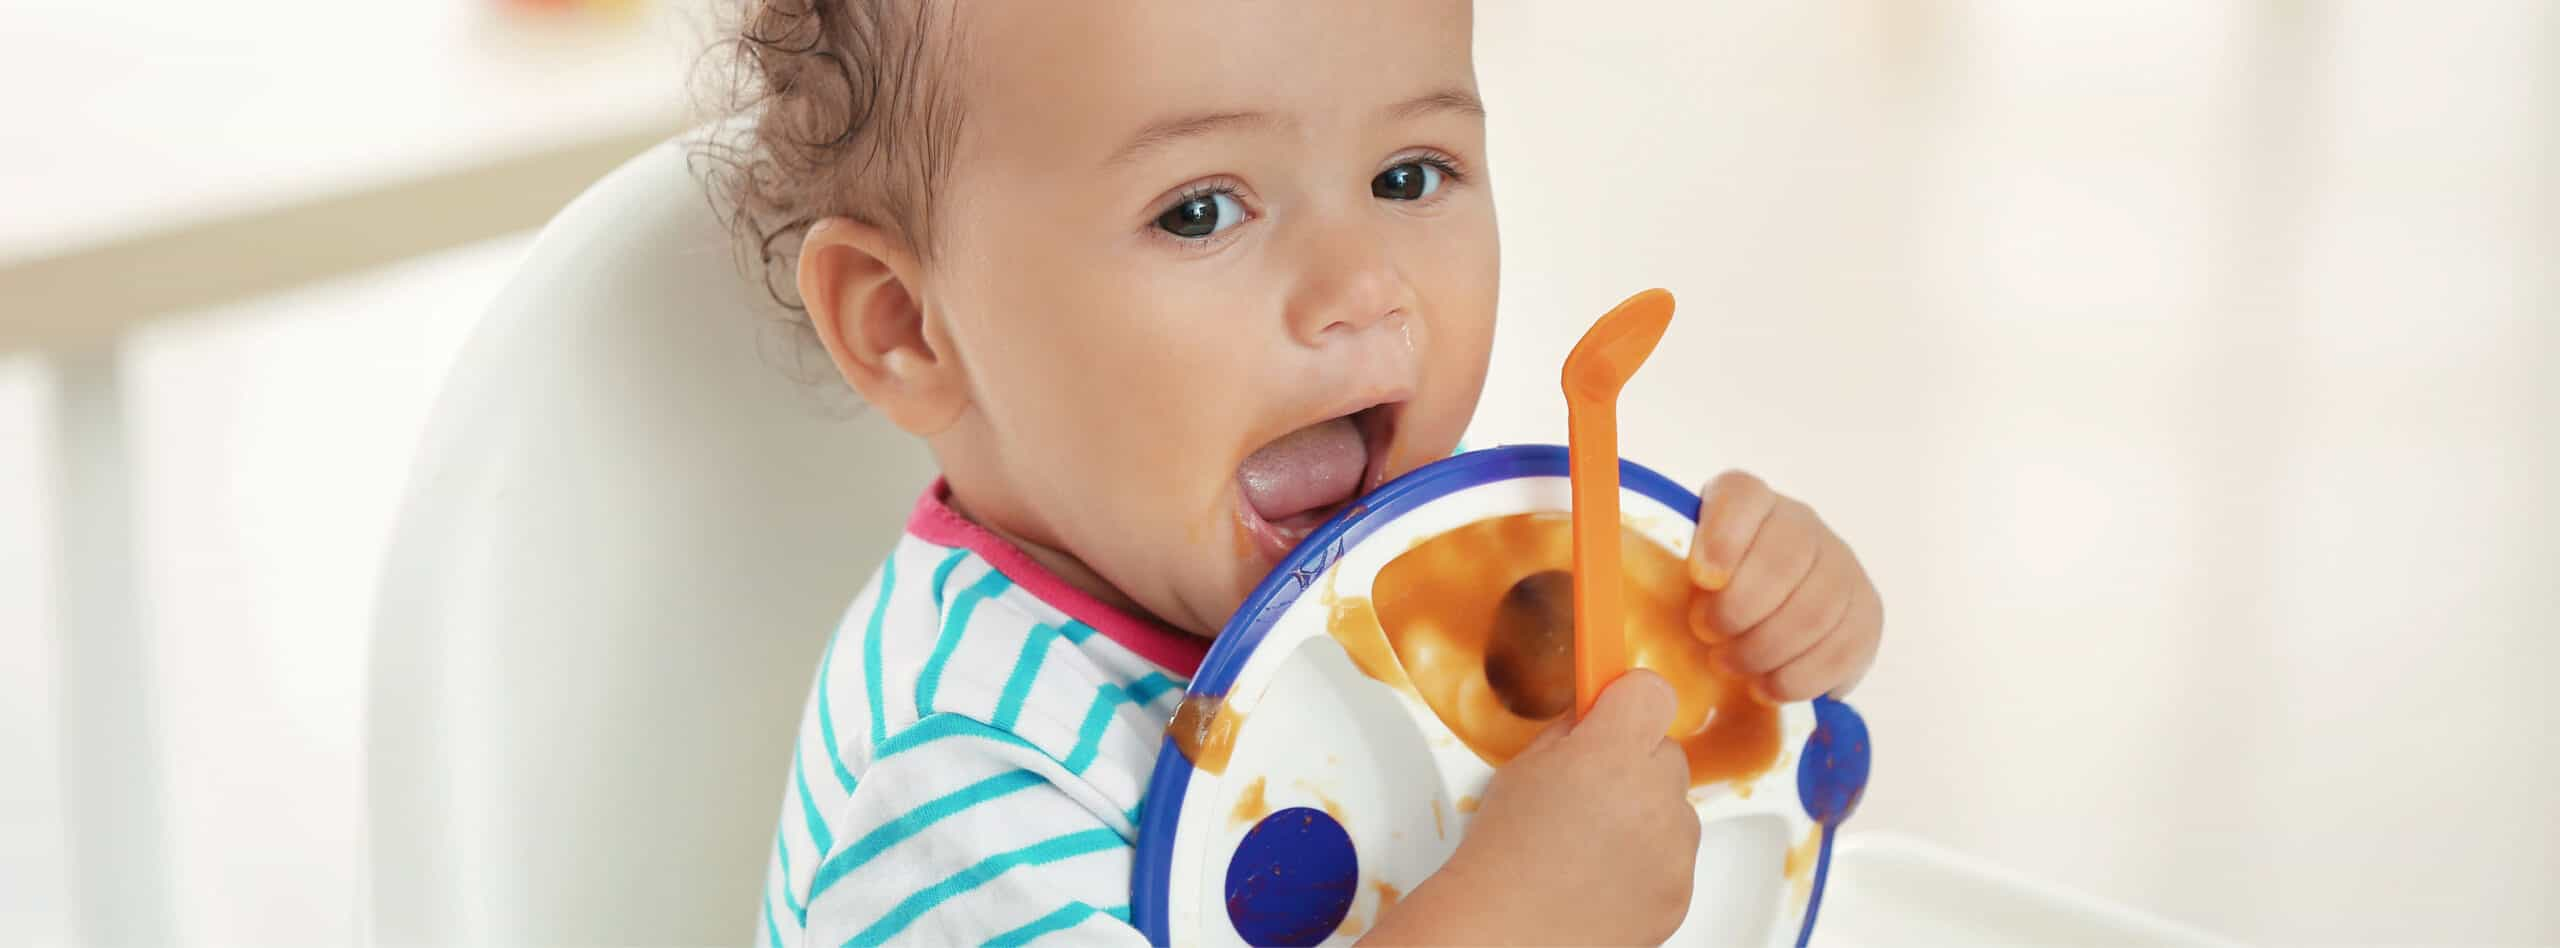 The Best Plates for Babies and Toddlers | New Ways Nutrition